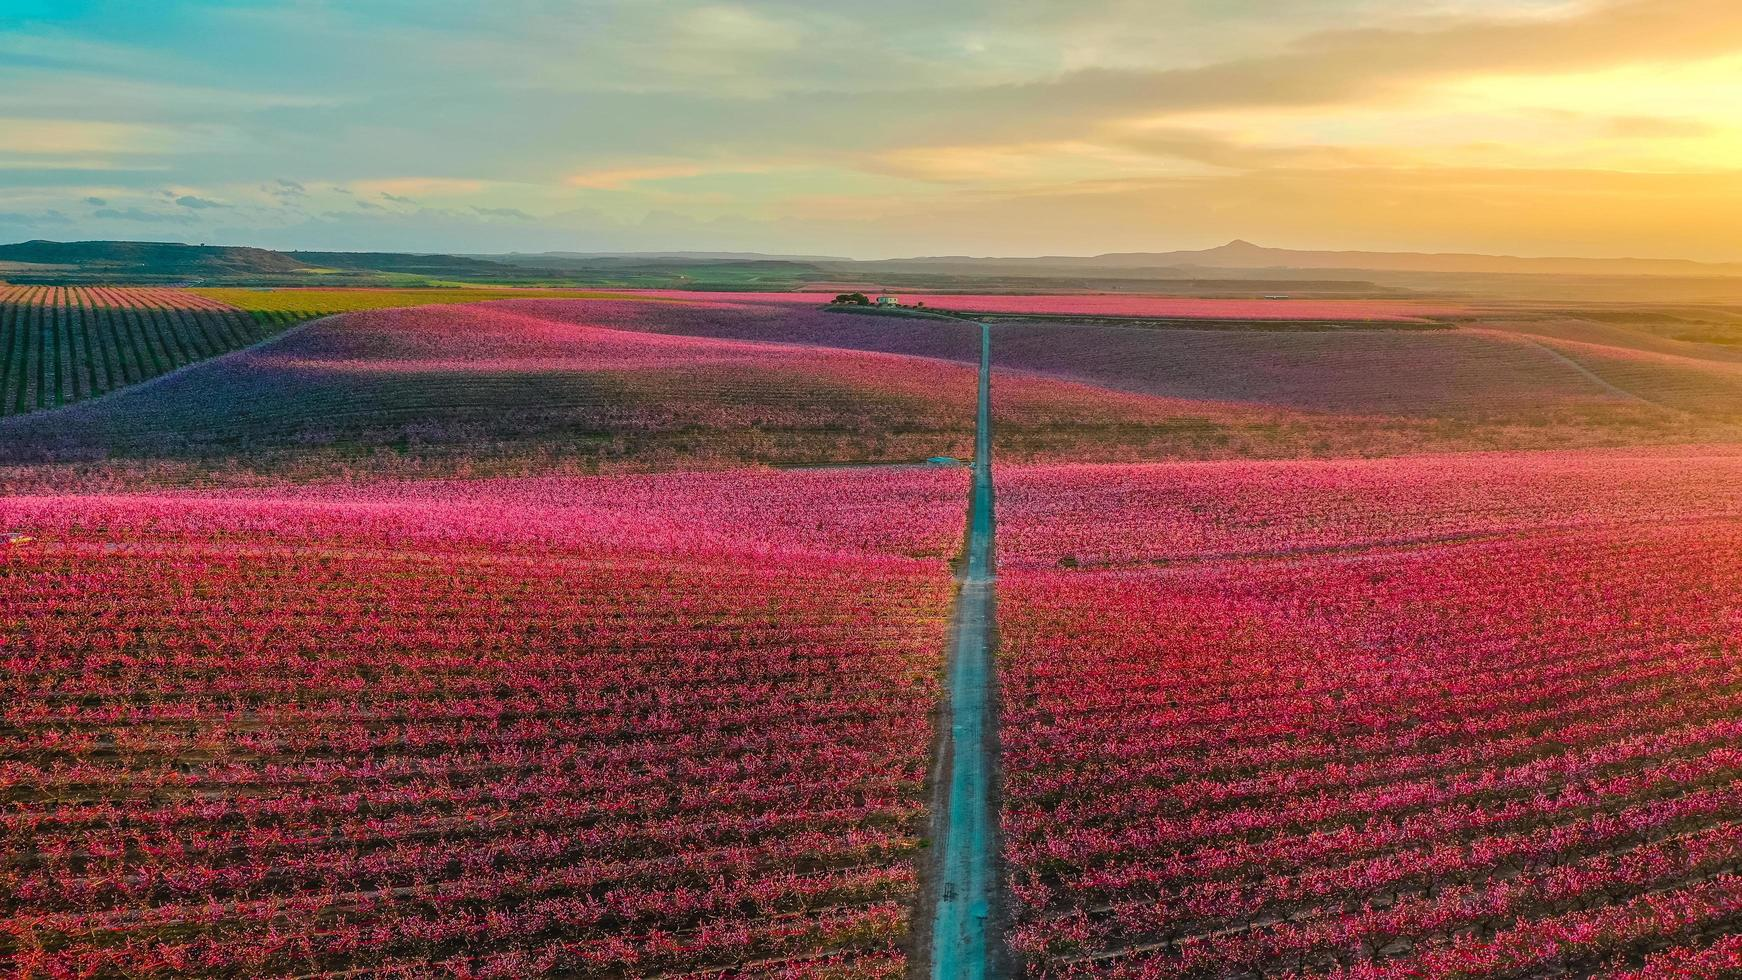 Red flower field at sunset photo